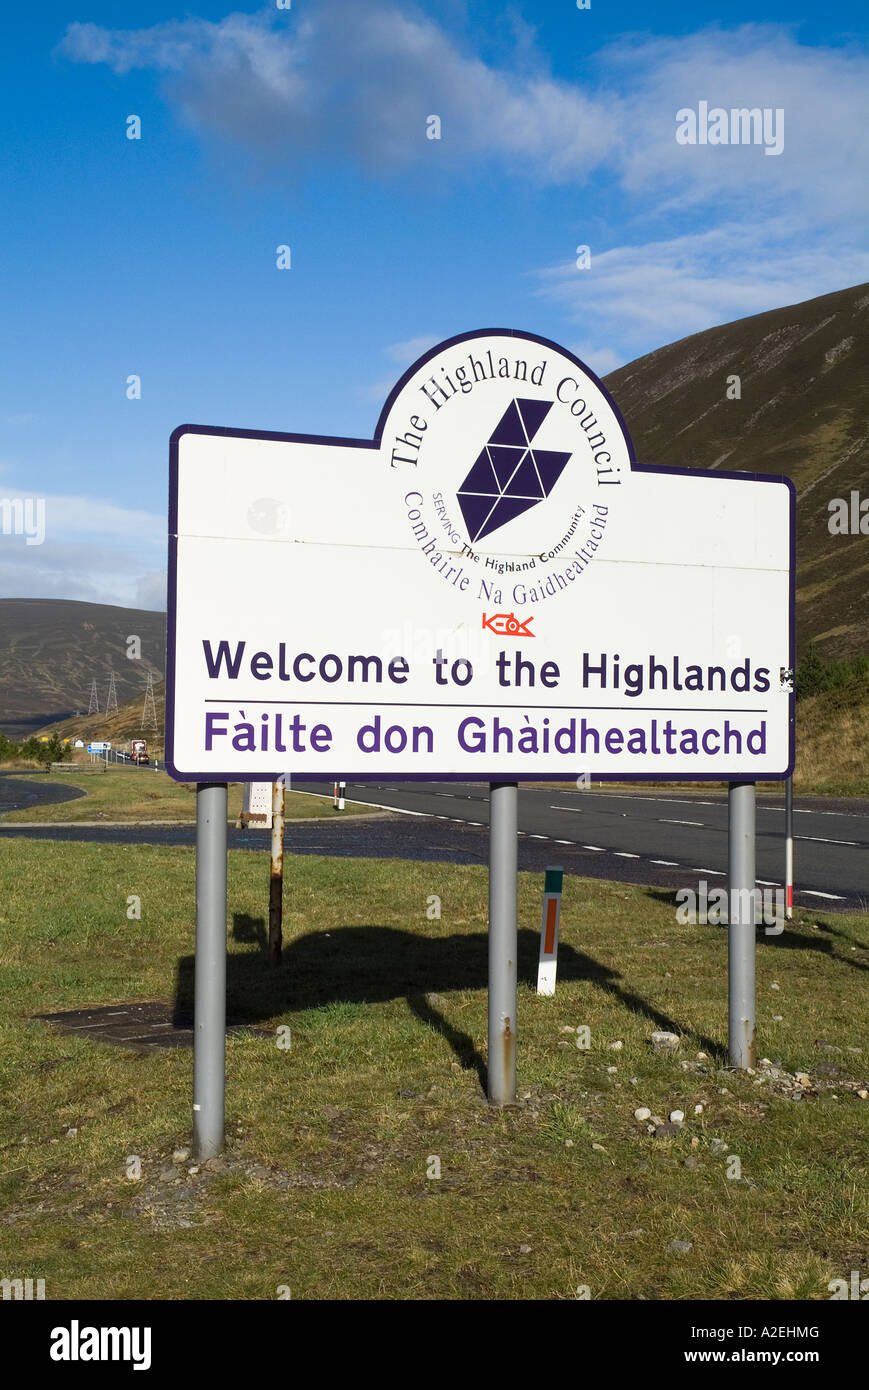 dh Welcome to the Highlands sign PASS OF DRUMOCHTER INVERNESSSHIRE A9 Signpost in English and Gaelic scotland road signs language Stock Photo